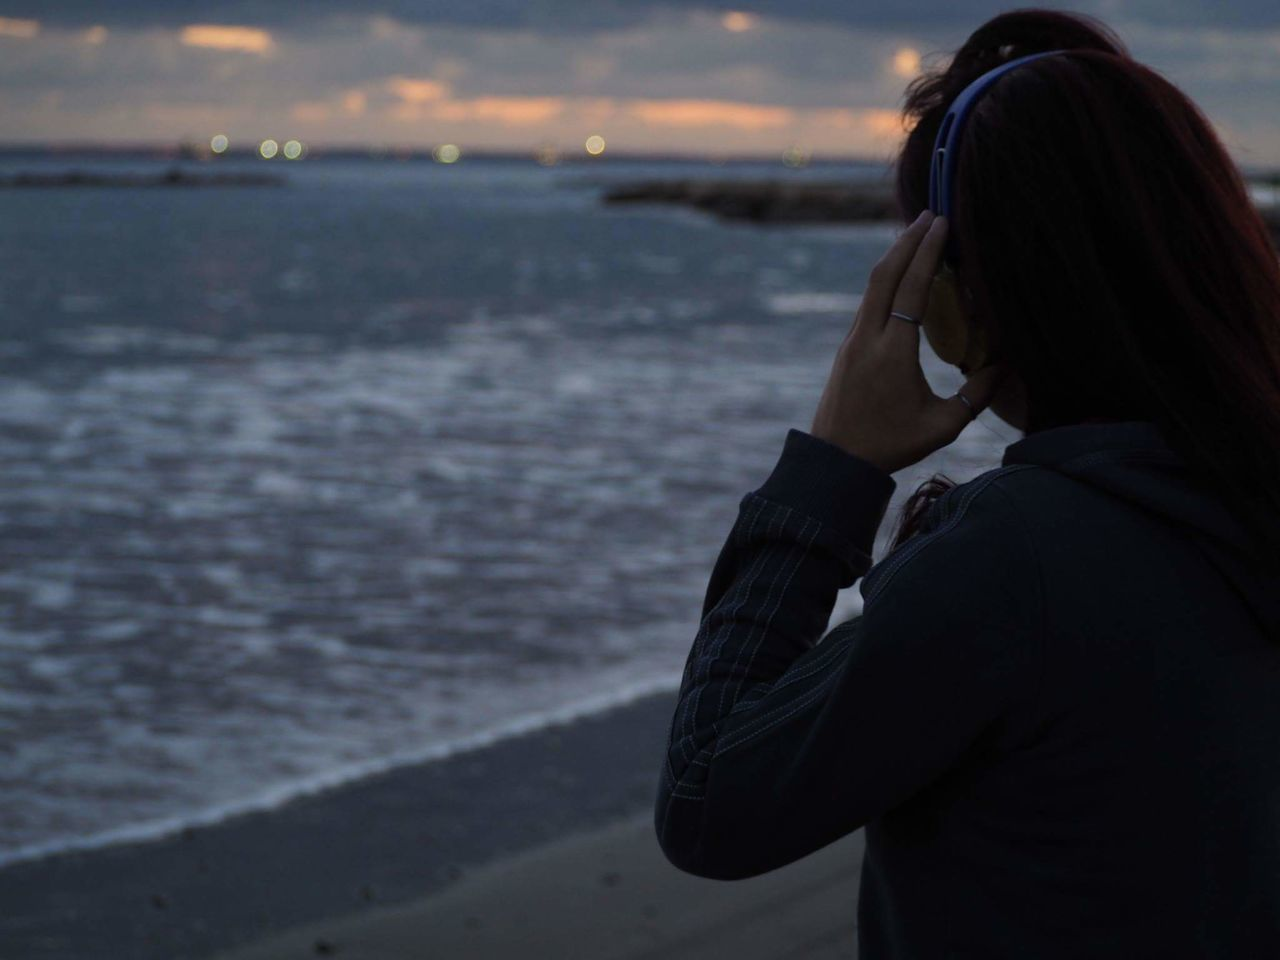 TakeoverMusic One Person Beach One Woman Only City Close-up Outdoors Nature Watching The Sunset Sunset Out Of Focus Background Listening To Music Headphones Hand Focus EyeEm EyeEm Nature Lover Limassol Cyprus